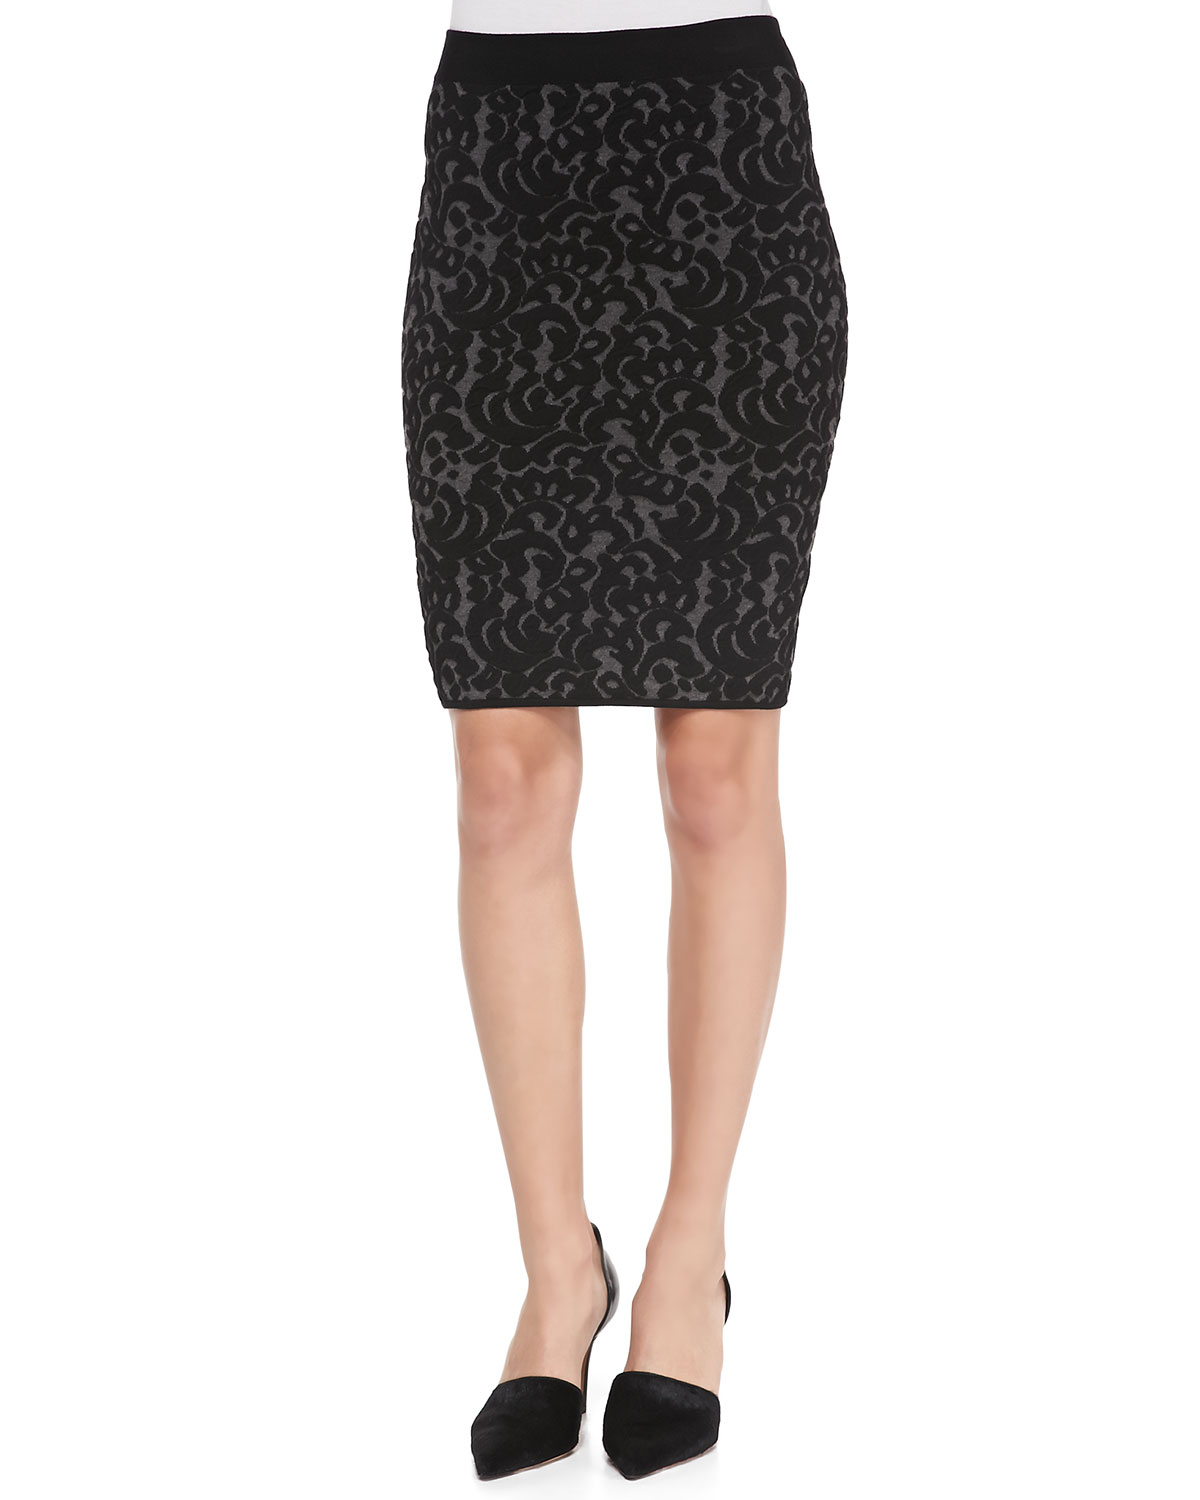 Milly Knit Lace Pencil Skirt in Black | Lyst